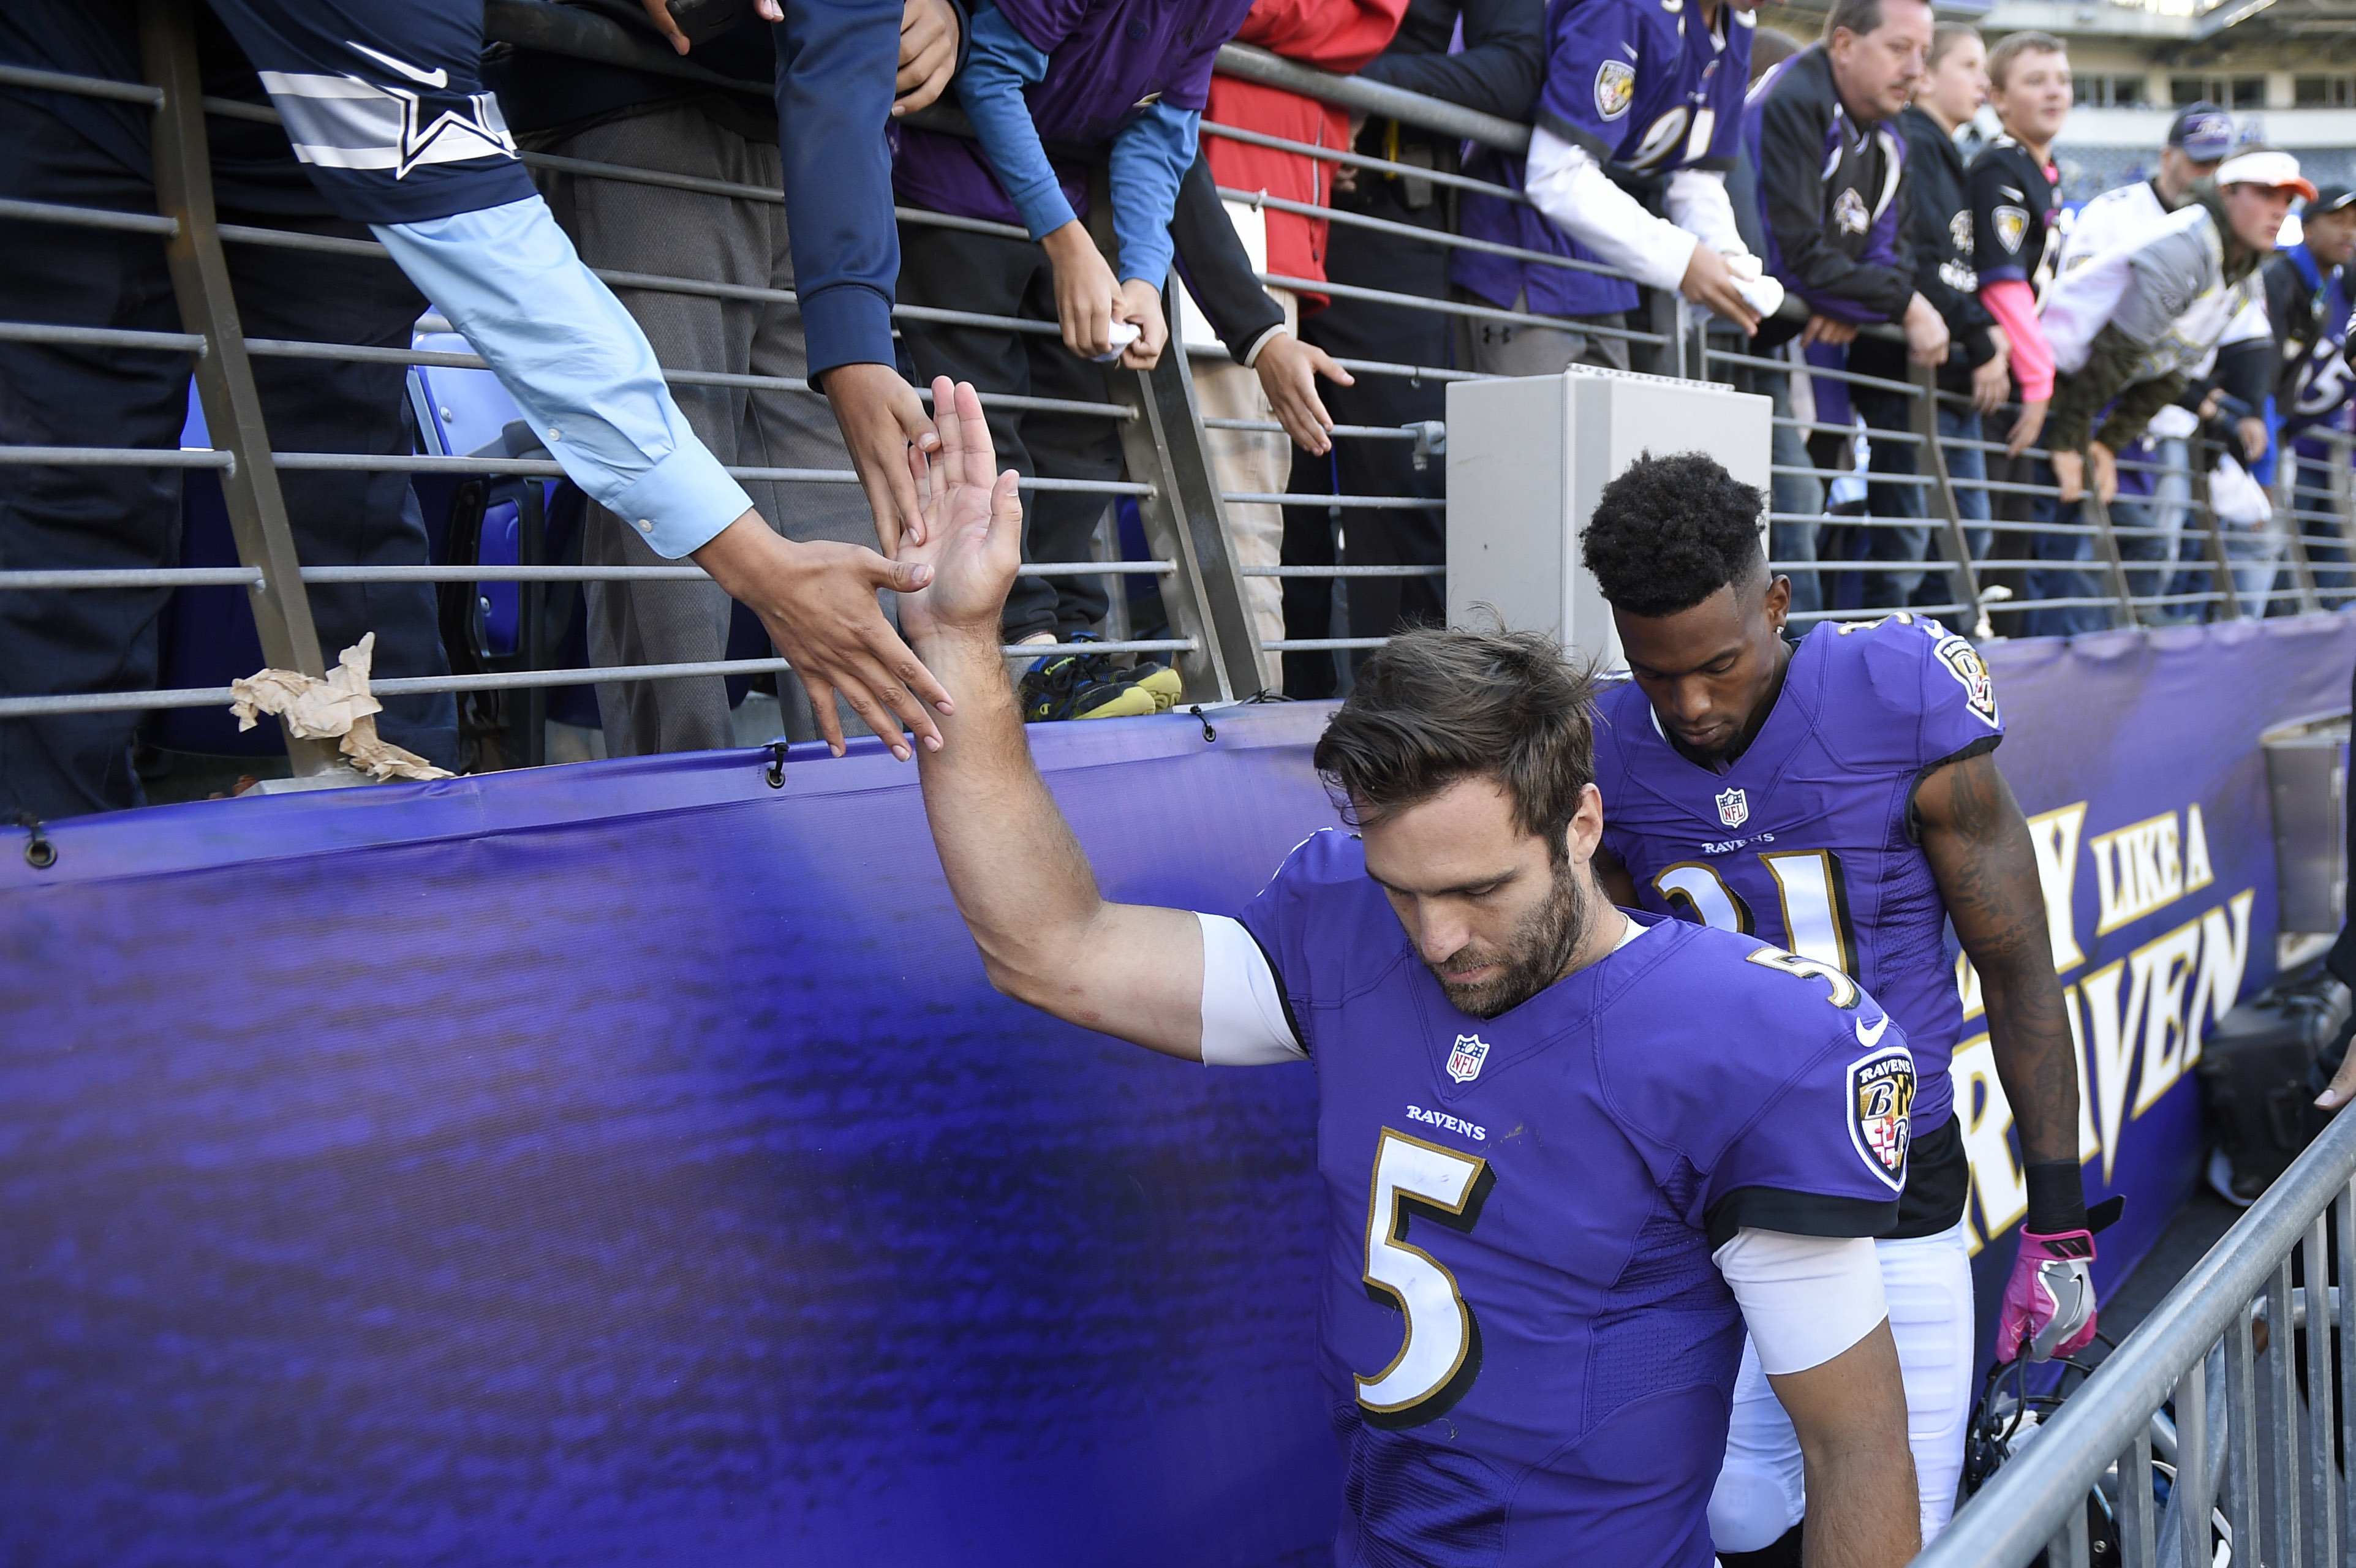 FILE - In this Oct. 9, 2016, file photo, Baltimore Ravens' Joe Flacco greets fans as he walks to the locker room after losing an NFL football game to the Washington Redskins, in Baltimore.  It's been an inconsistent season for Ravens quarterback Joe Flacc